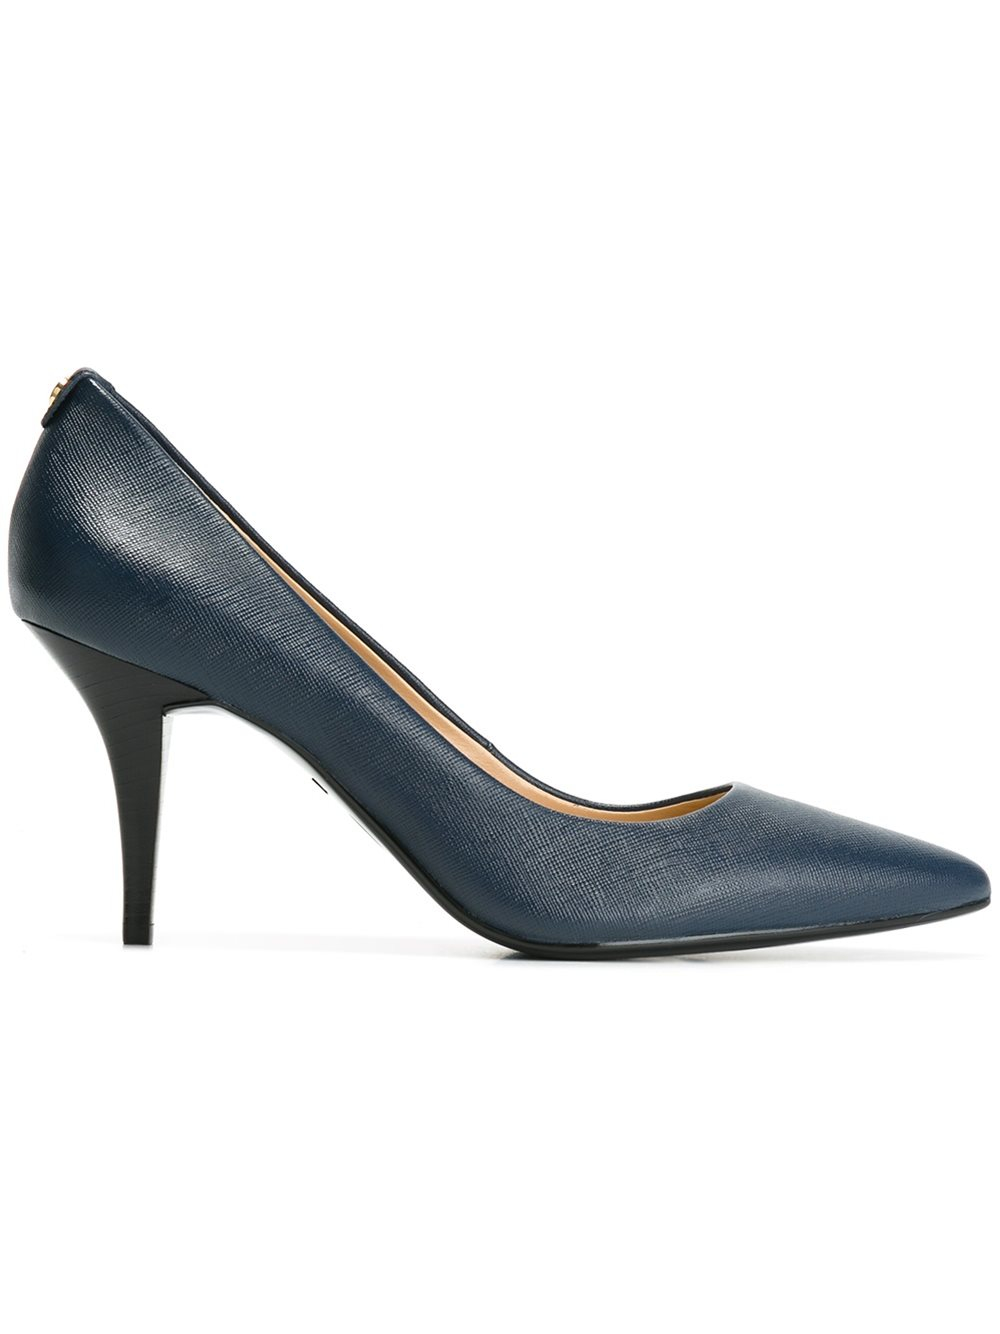 michael michael kors pointed toe leather pumps in blue lyst. Black Bedroom Furniture Sets. Home Design Ideas